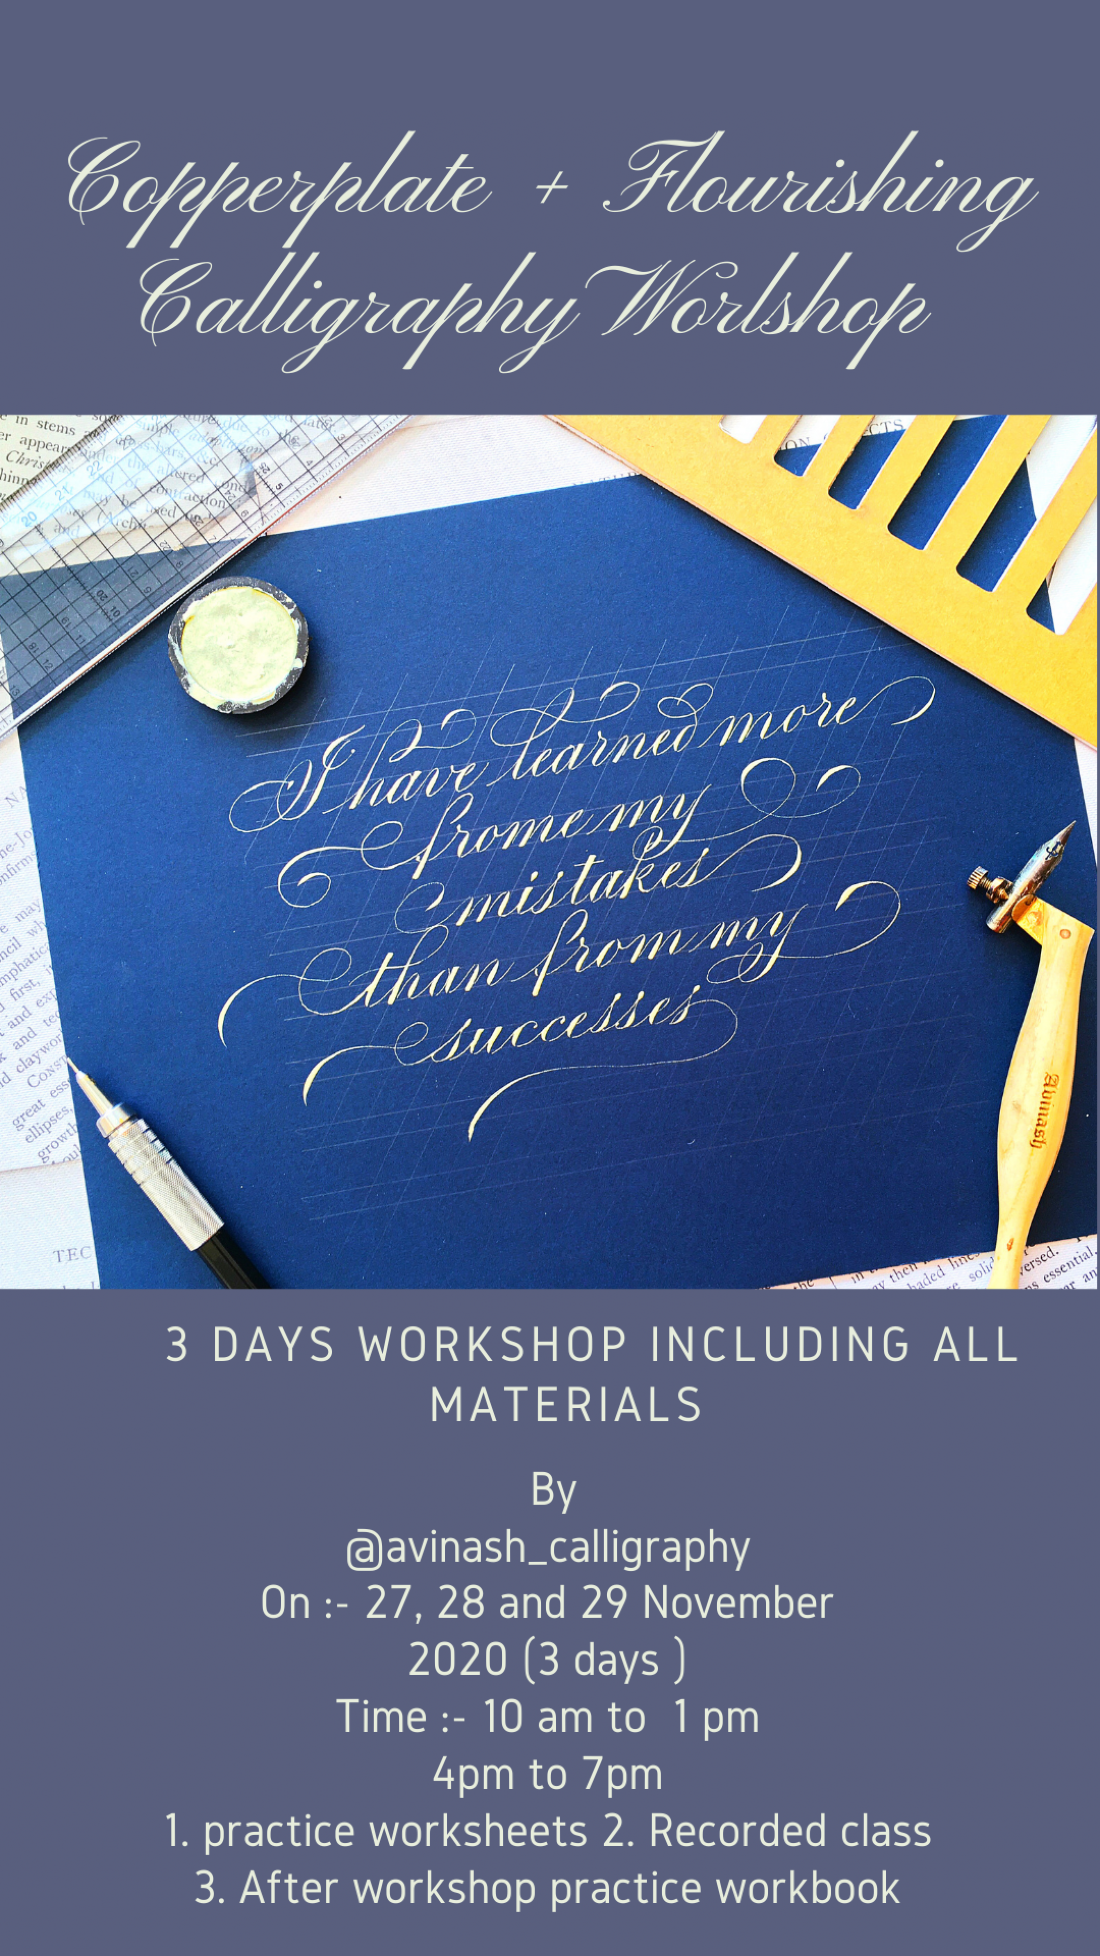 Copperplate + Flourishing Calligraphy Workshop, 27 November   Online Event   AllEvents.in